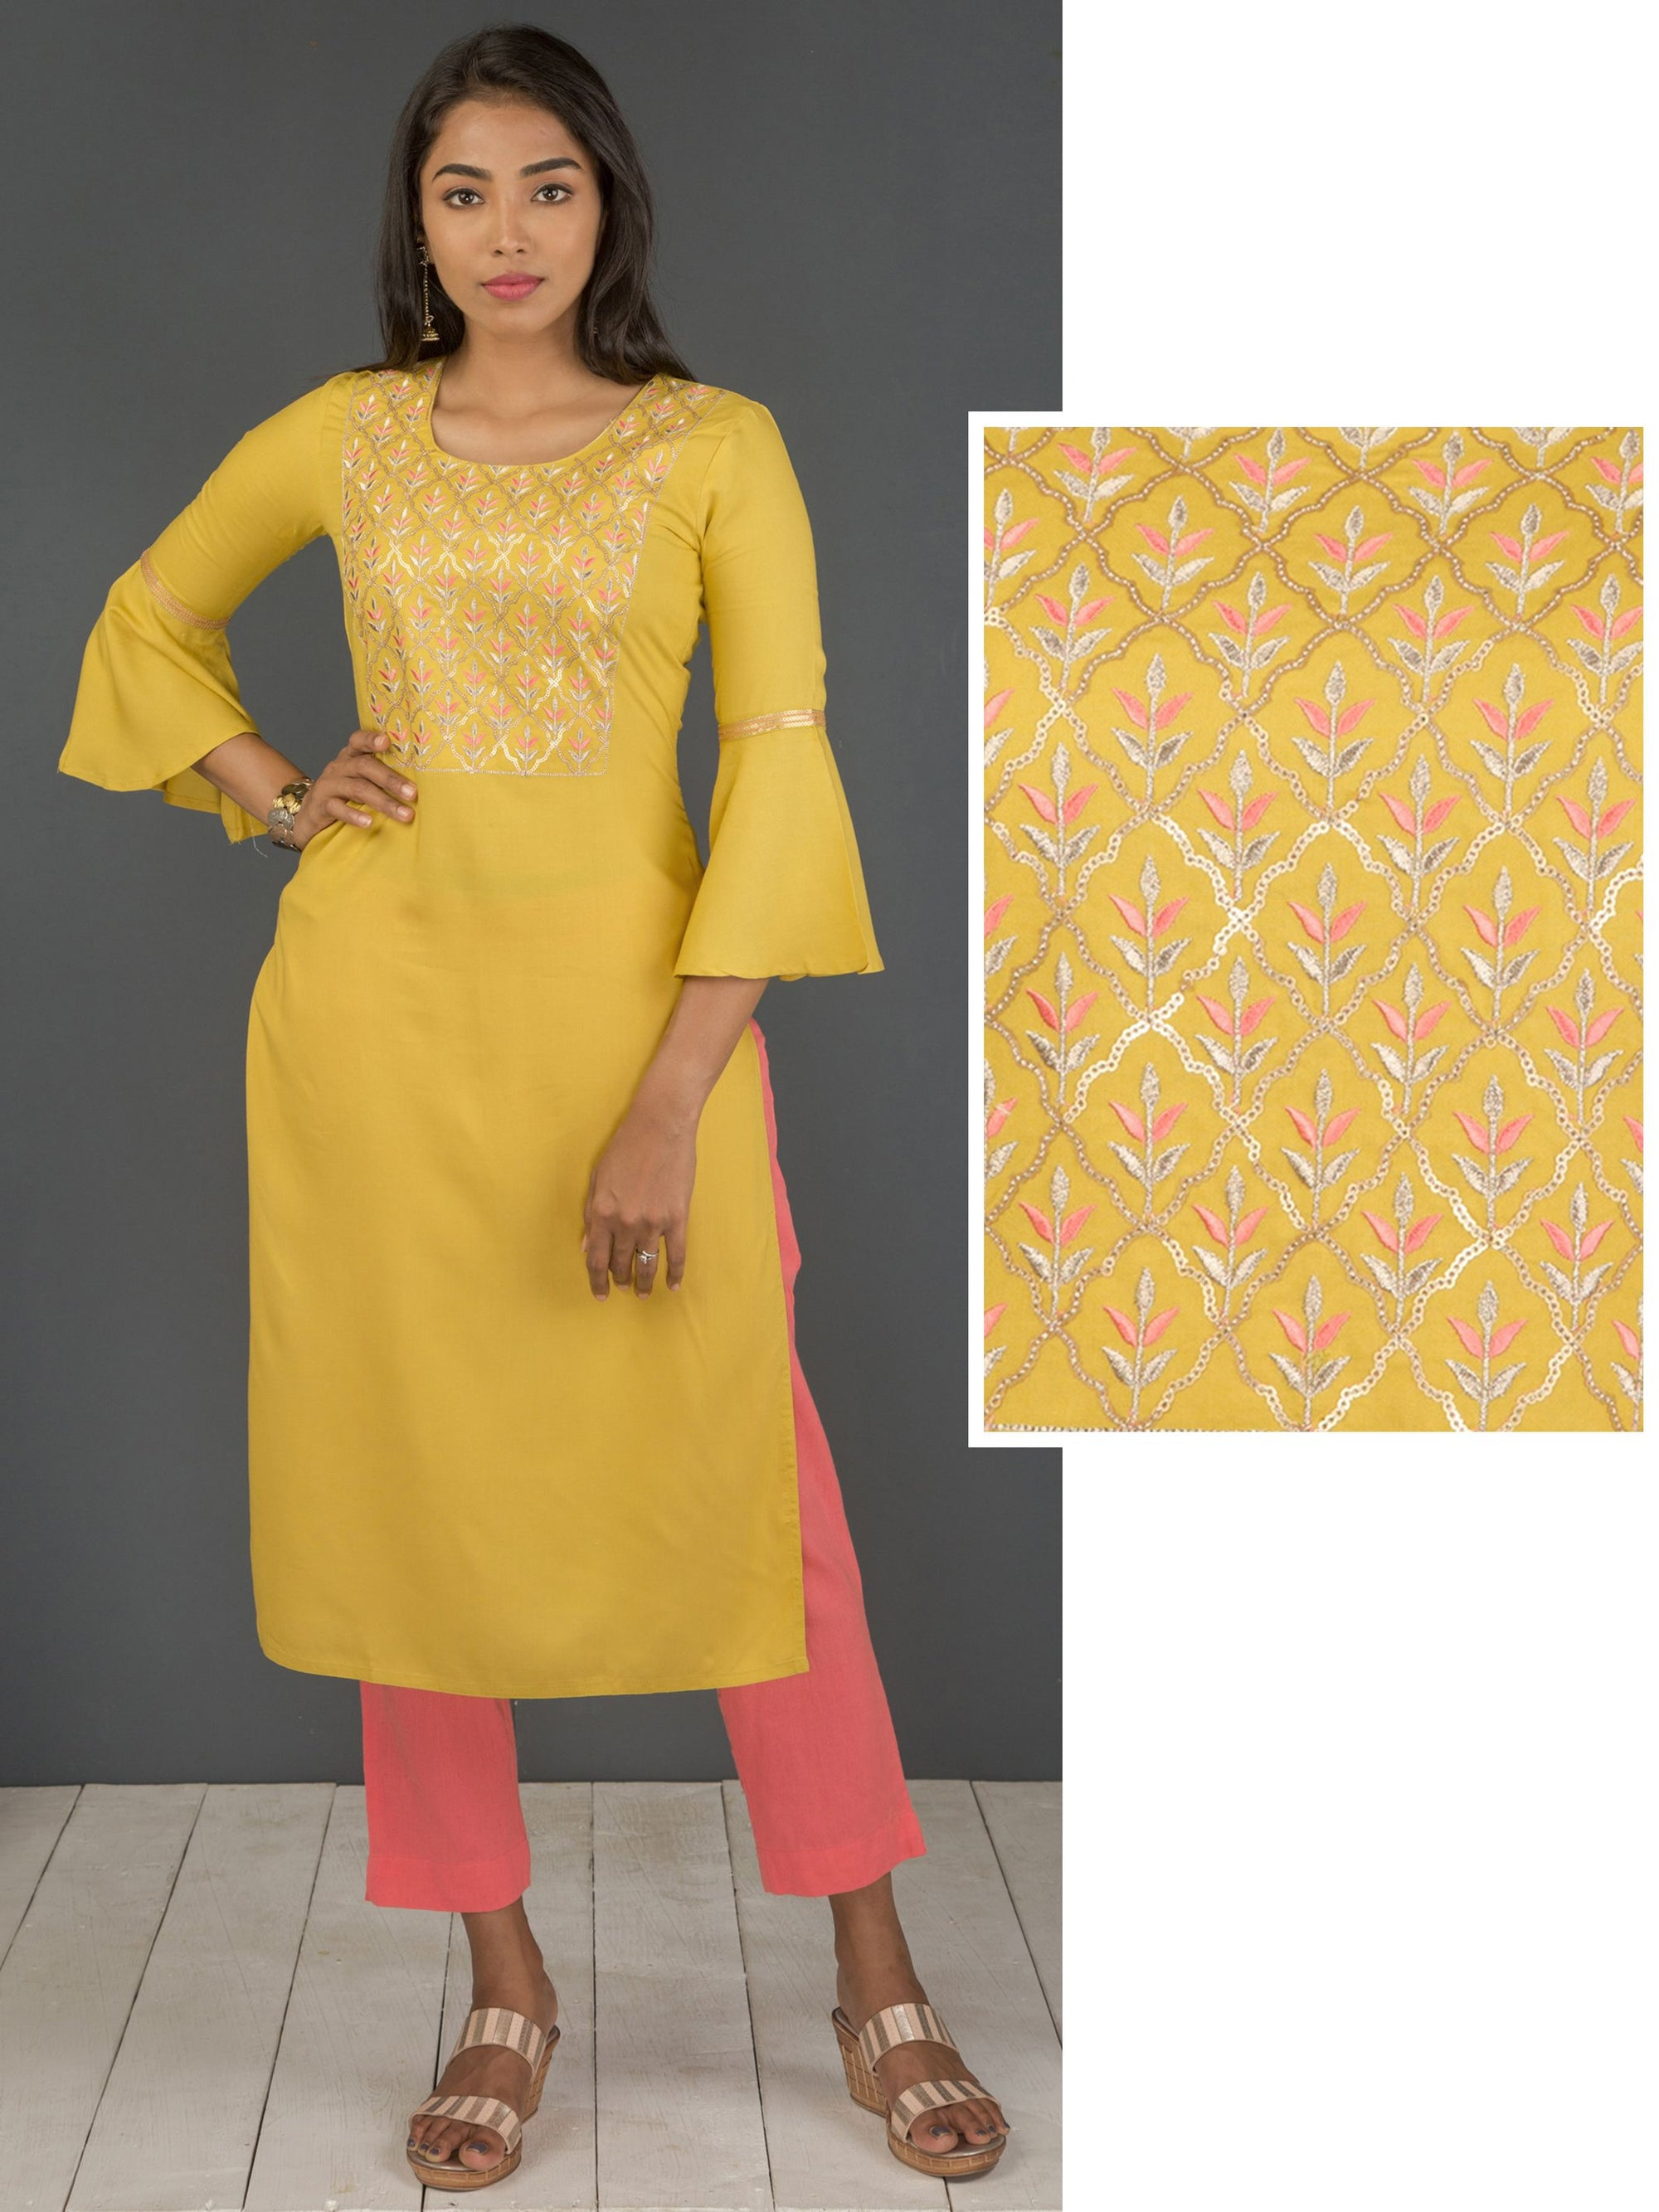 Satin And Zari Stitched Floral Embroidered Sequin Kurta With Bell Sleeves